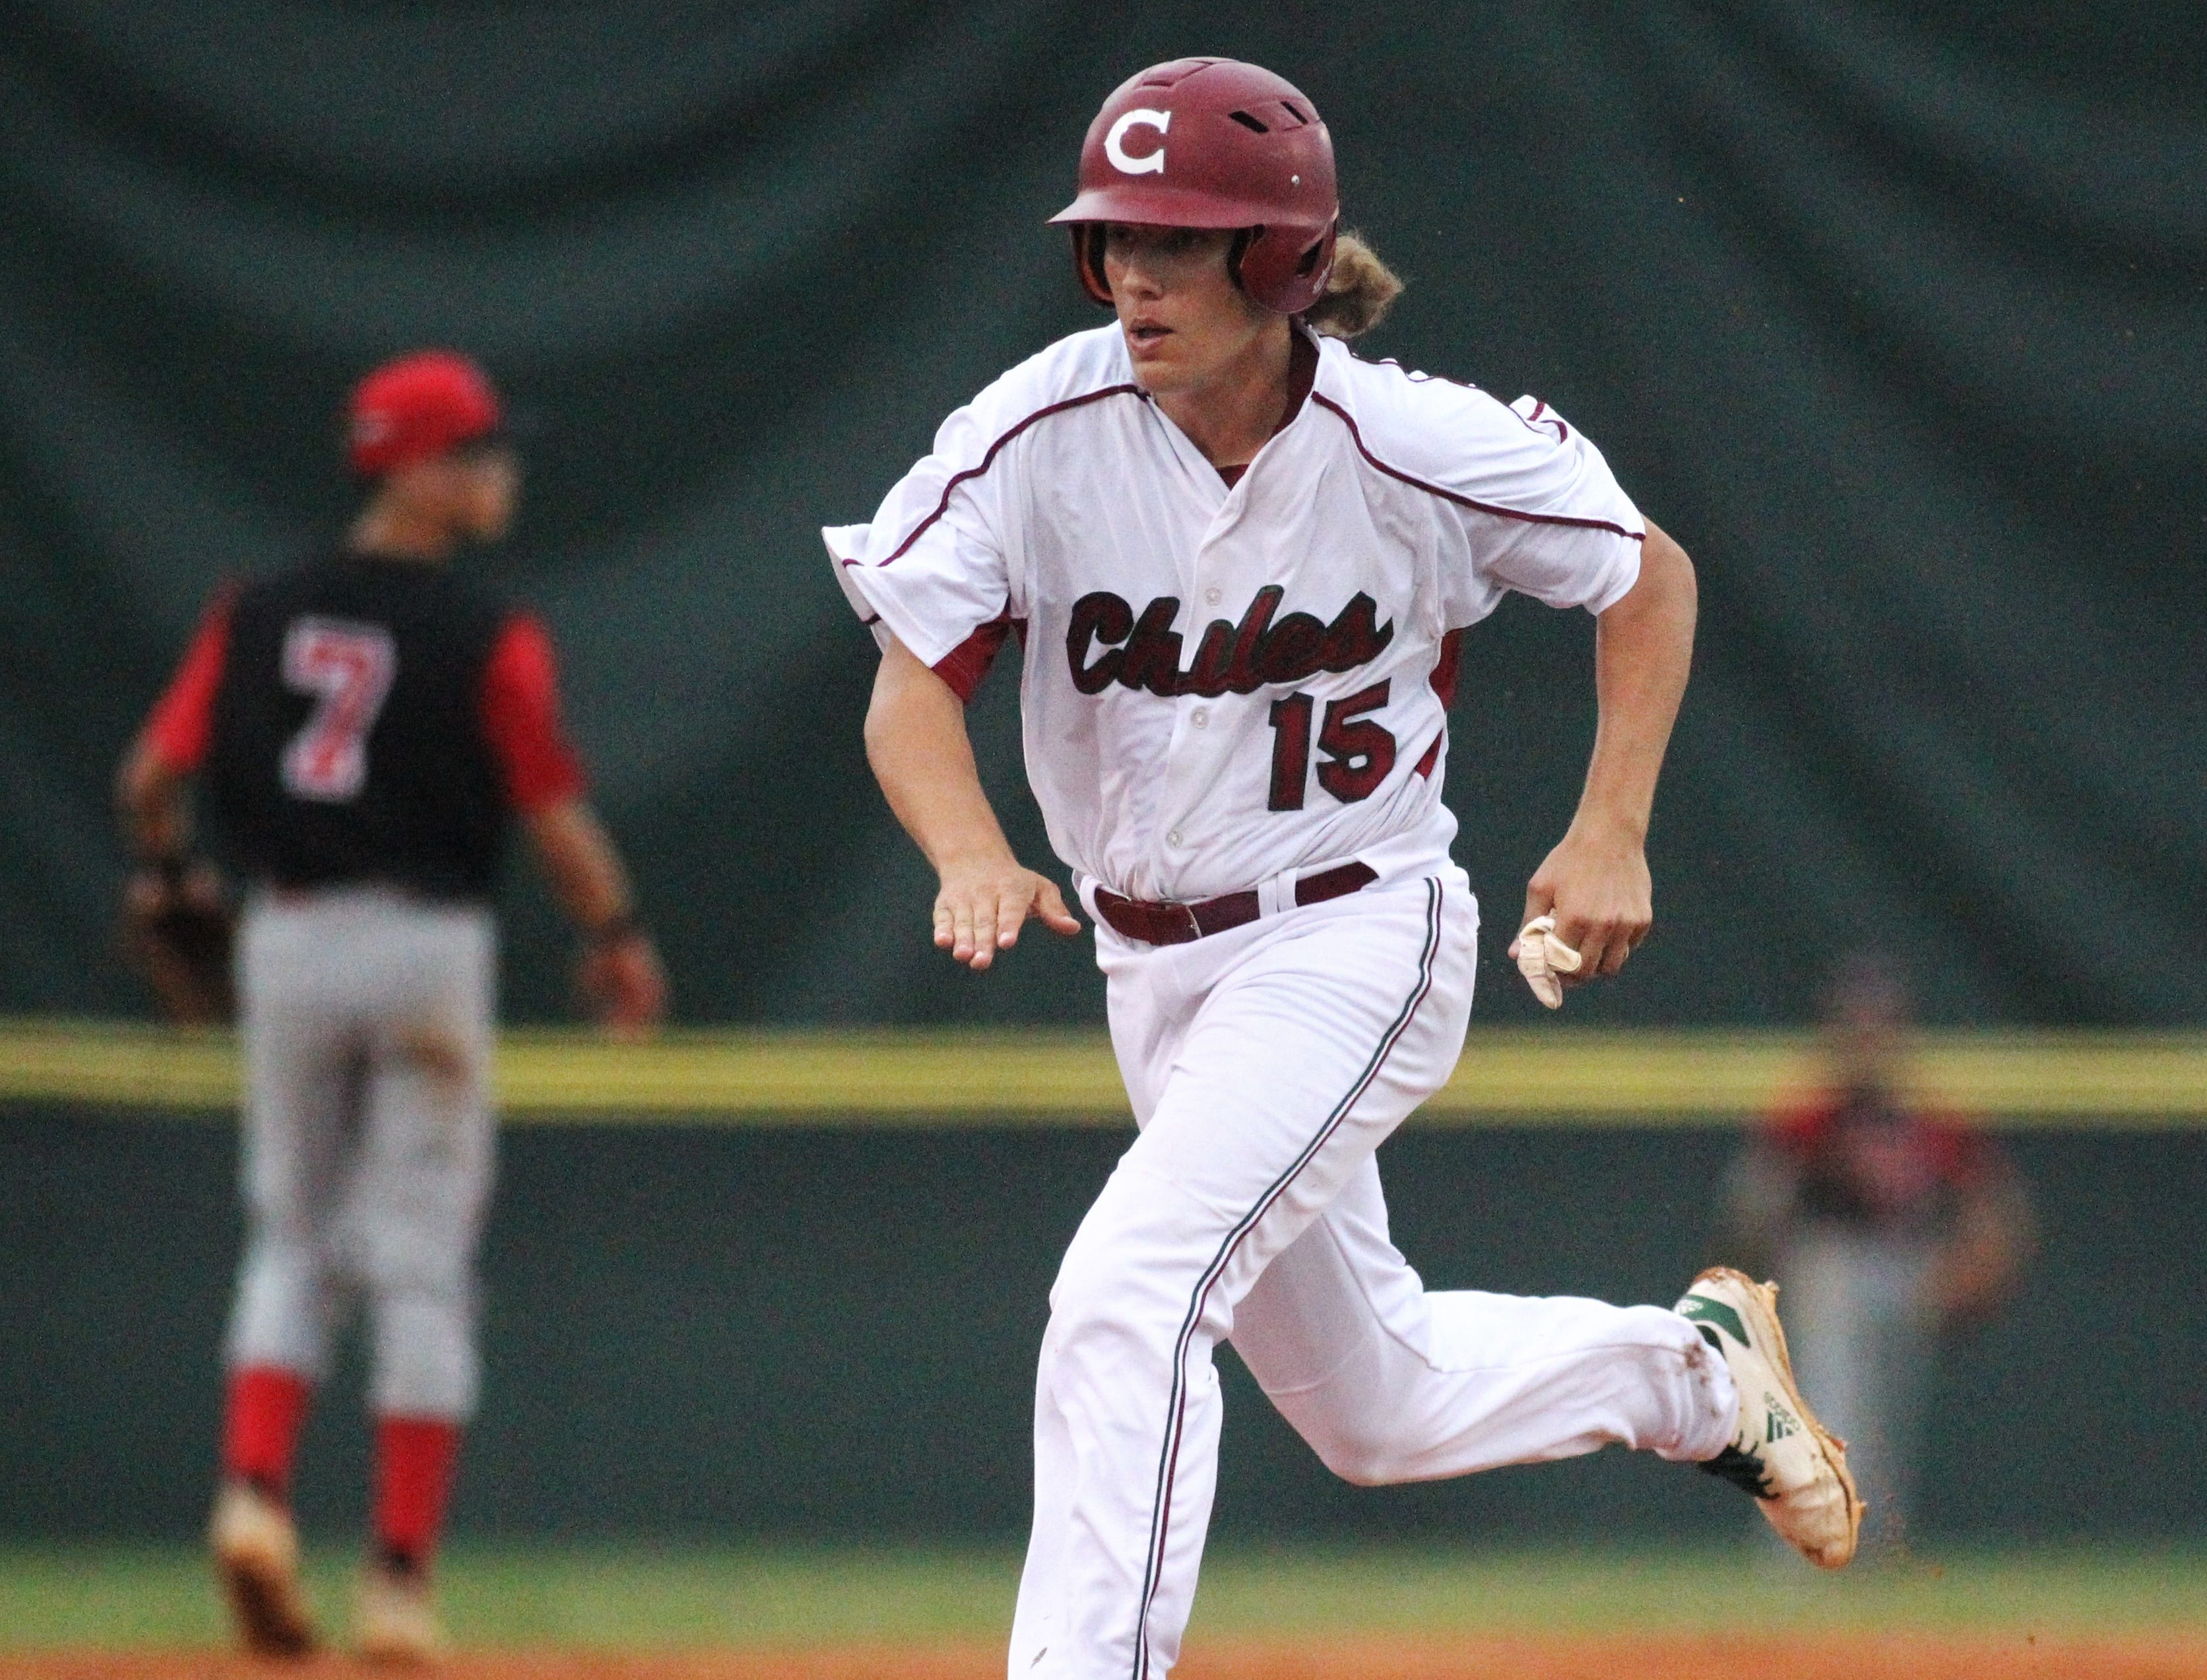 Chiles sophomore Tyler Gerteisen heads towards third base as Chiles won an 11-6 home game against Leon on Friday, April 5, 2019, to force a season split. The Lions won 3-0 earlier in the week.